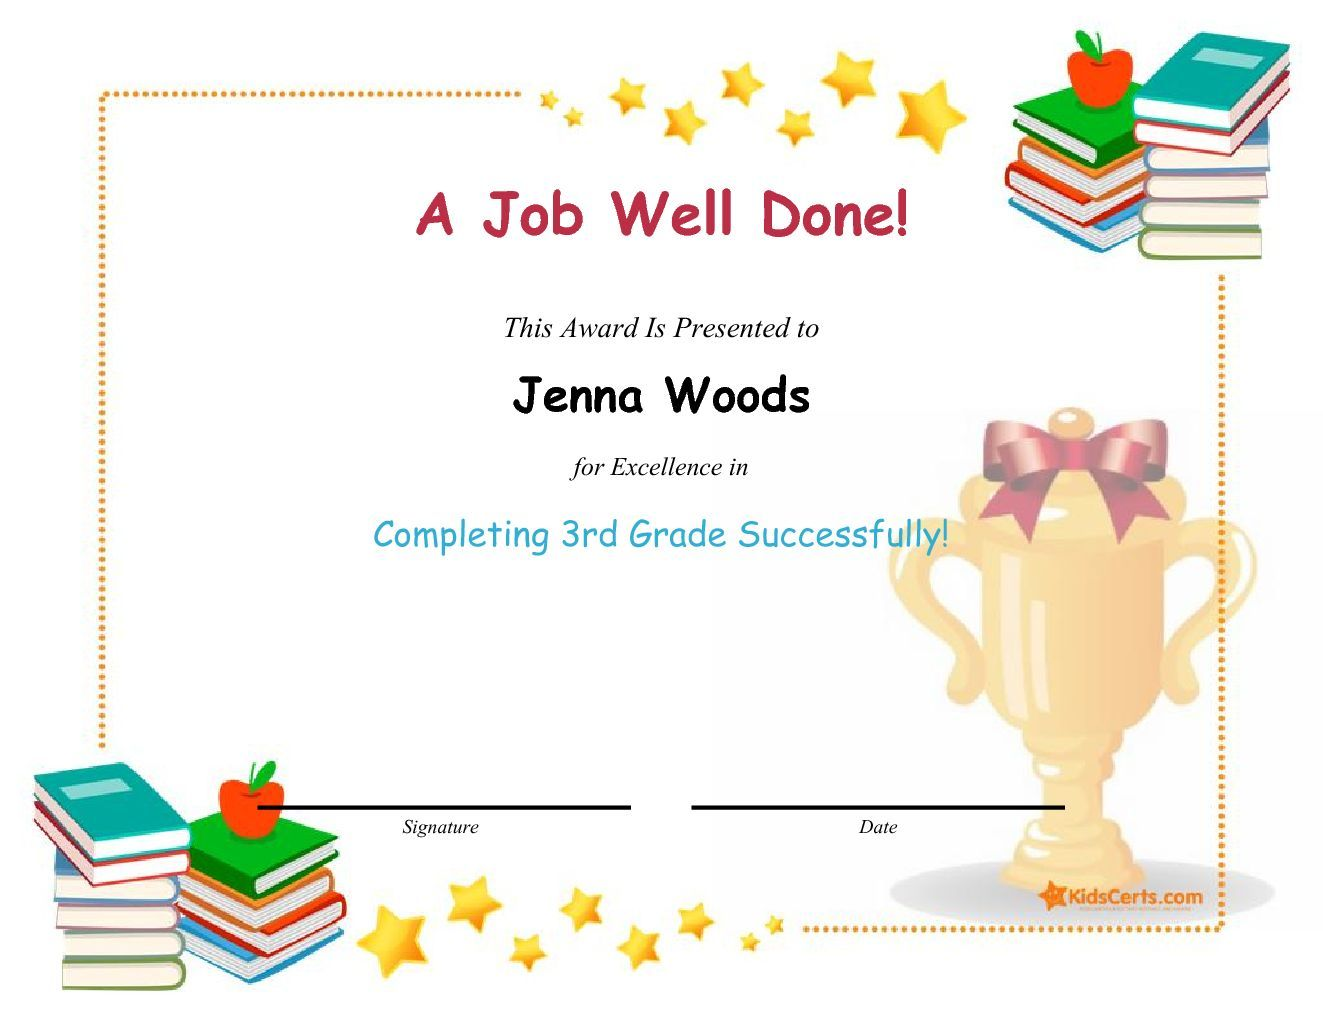 A job well done completing 3rd grade successfully